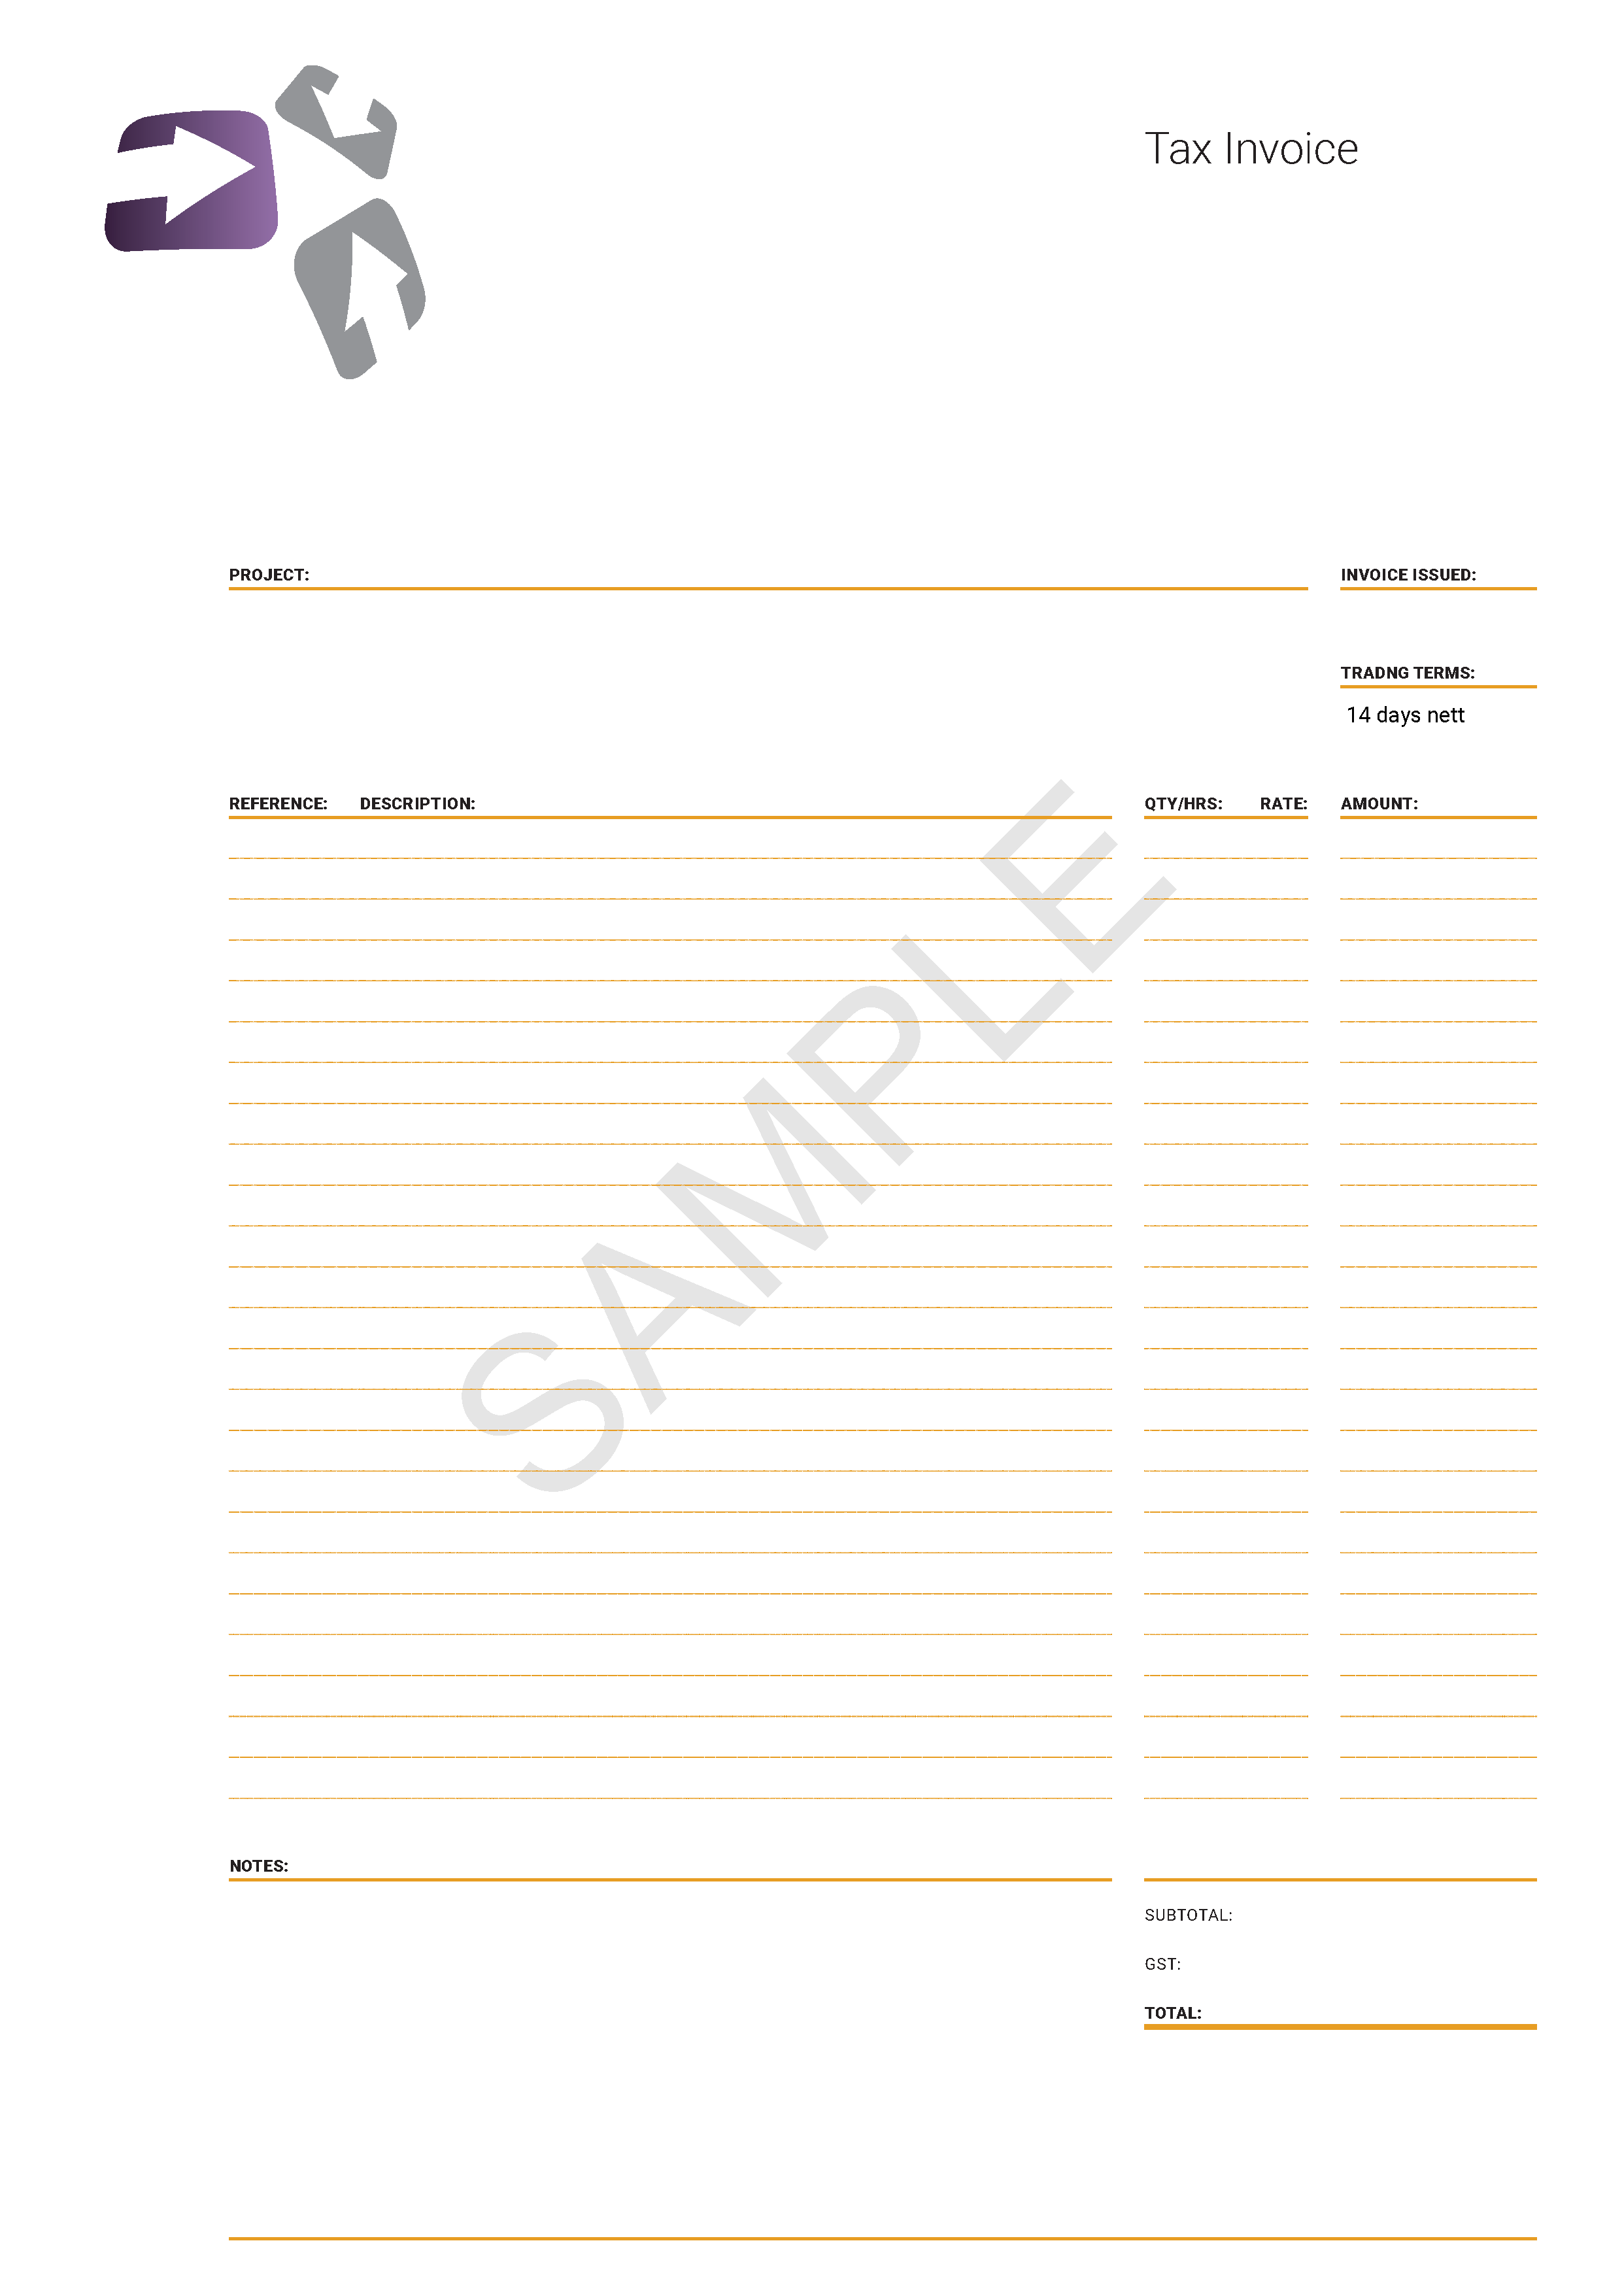 Example of fillable PDF digital form